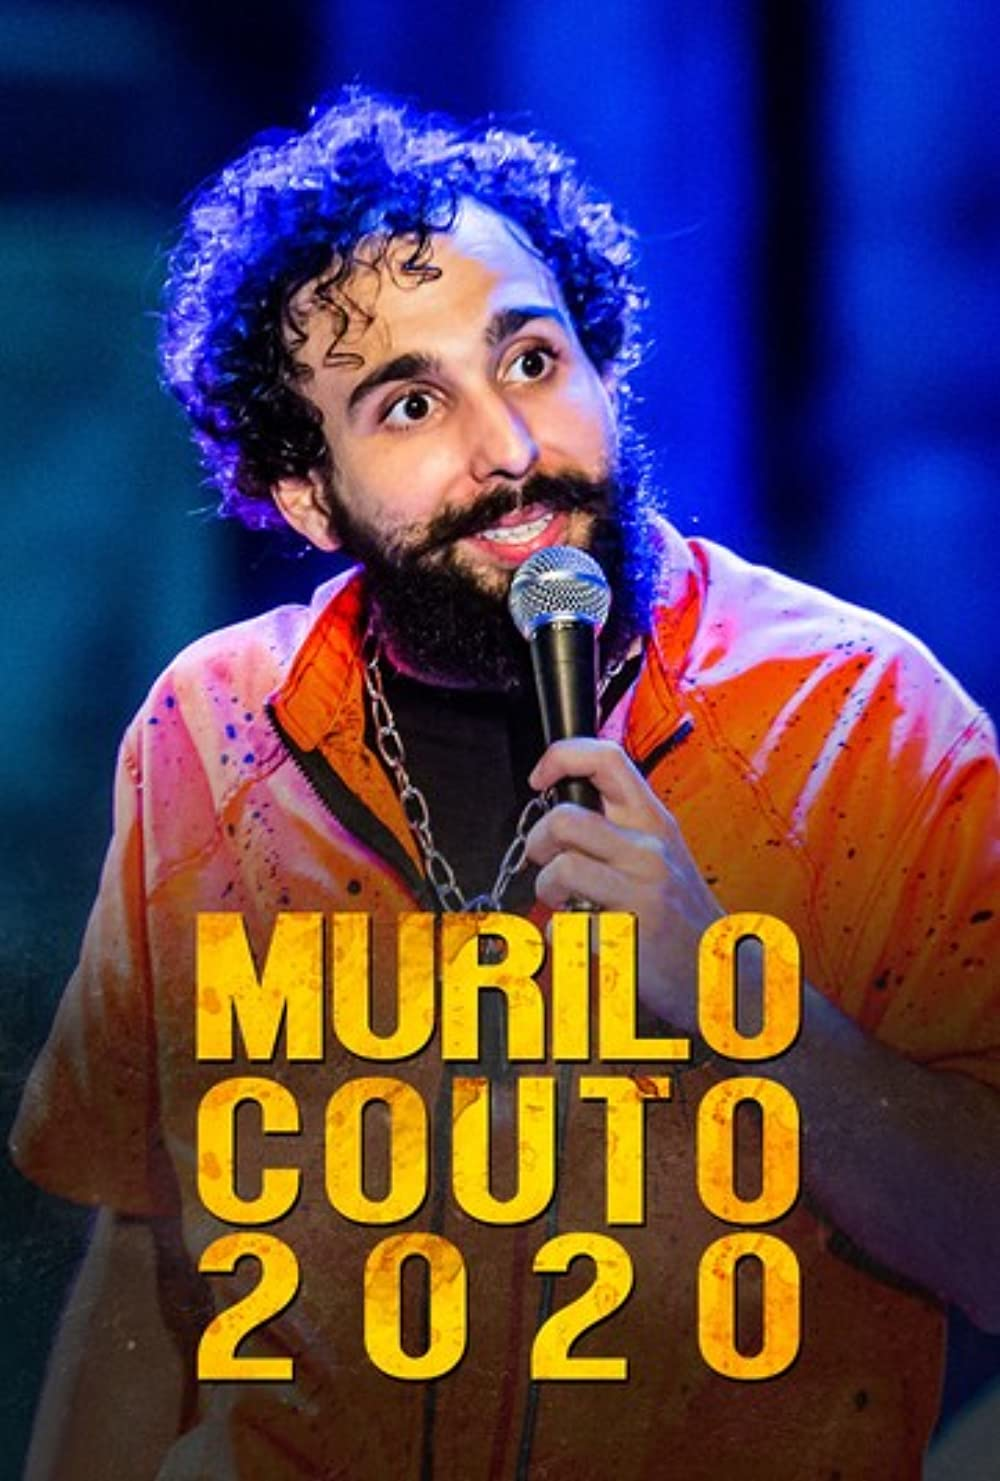 Murilo Couto: 2020 - Nacional WEB-DL 1080p Download